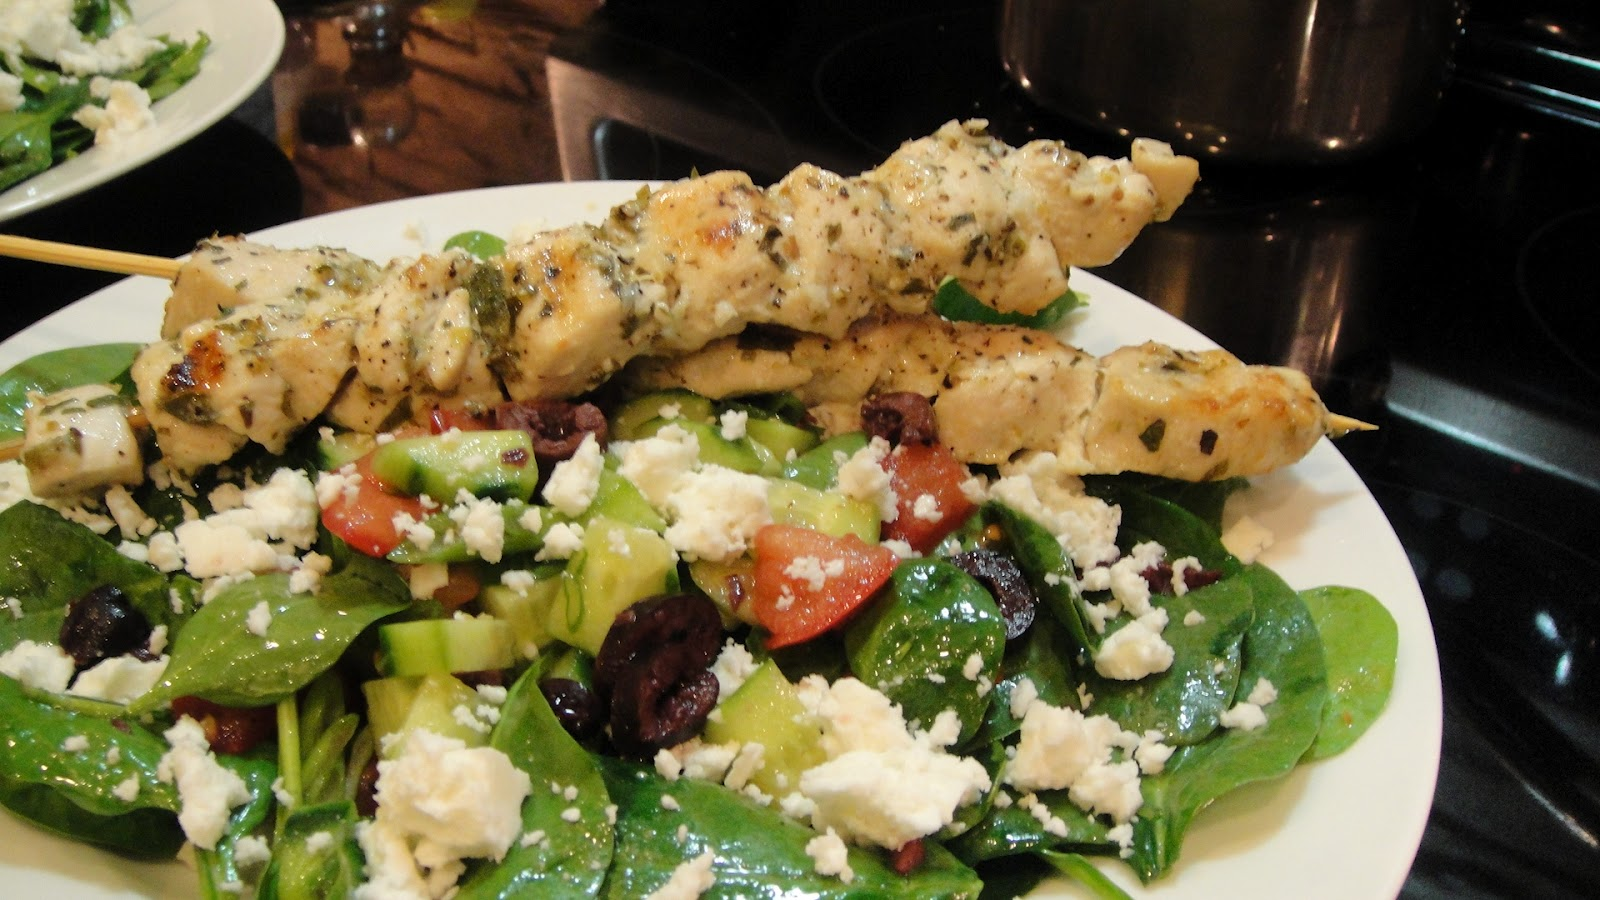 want to cook that: Chicken Souvlaki on Spinach Salad